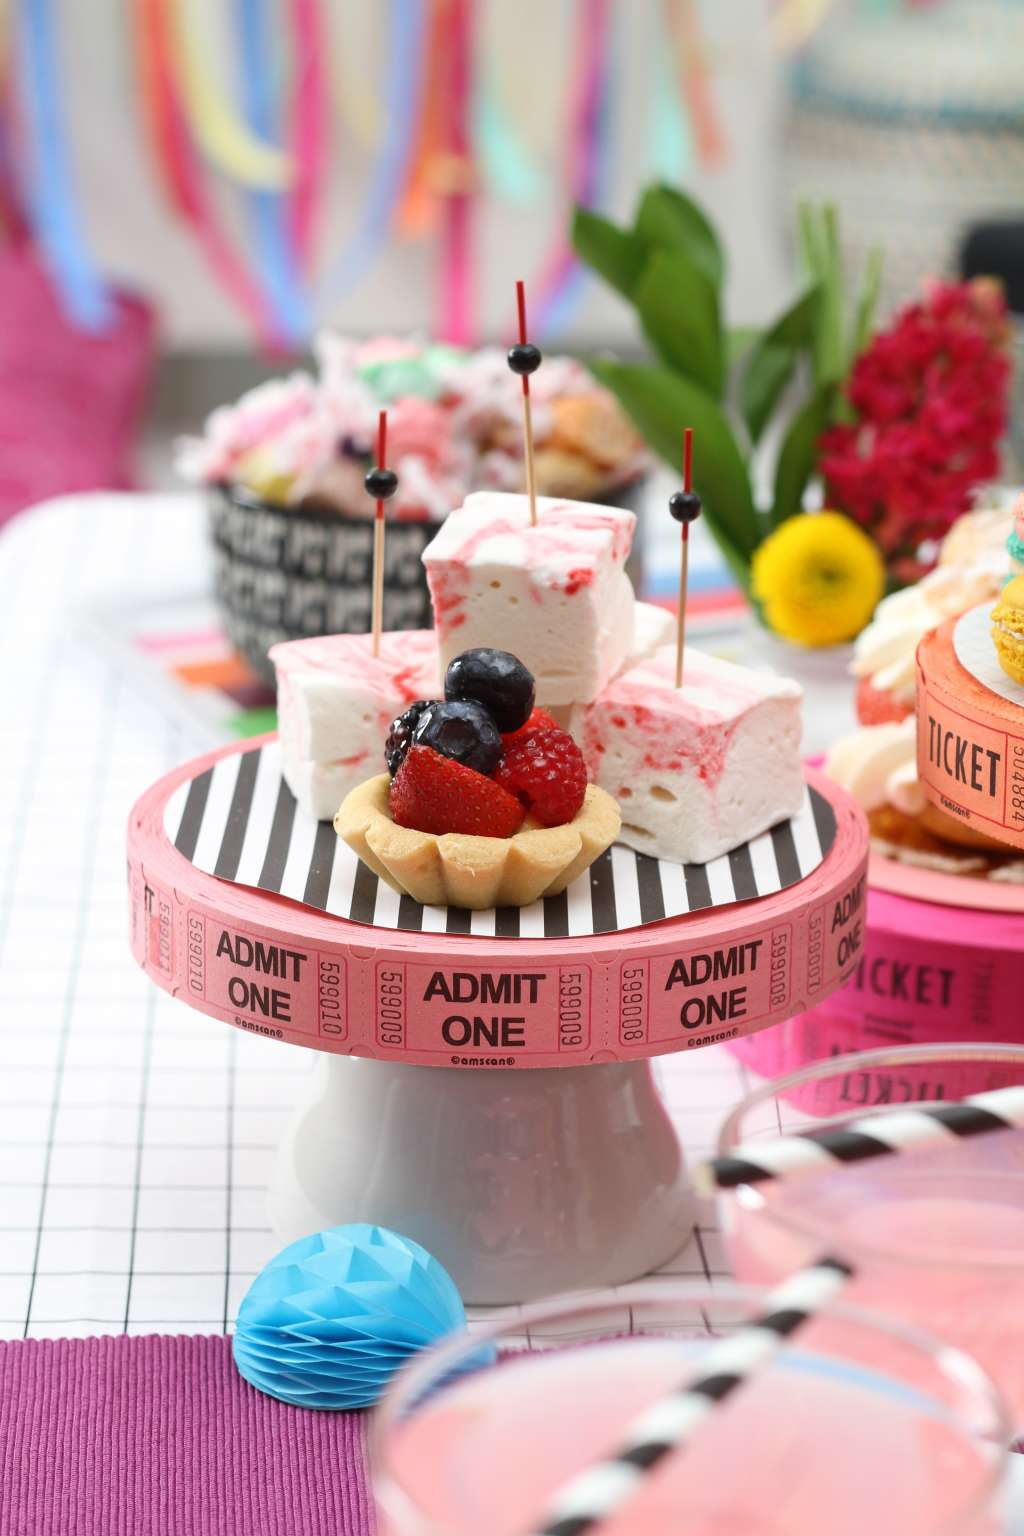 4 Fun, Colorful Party Decorations to Make from Movie Tickets